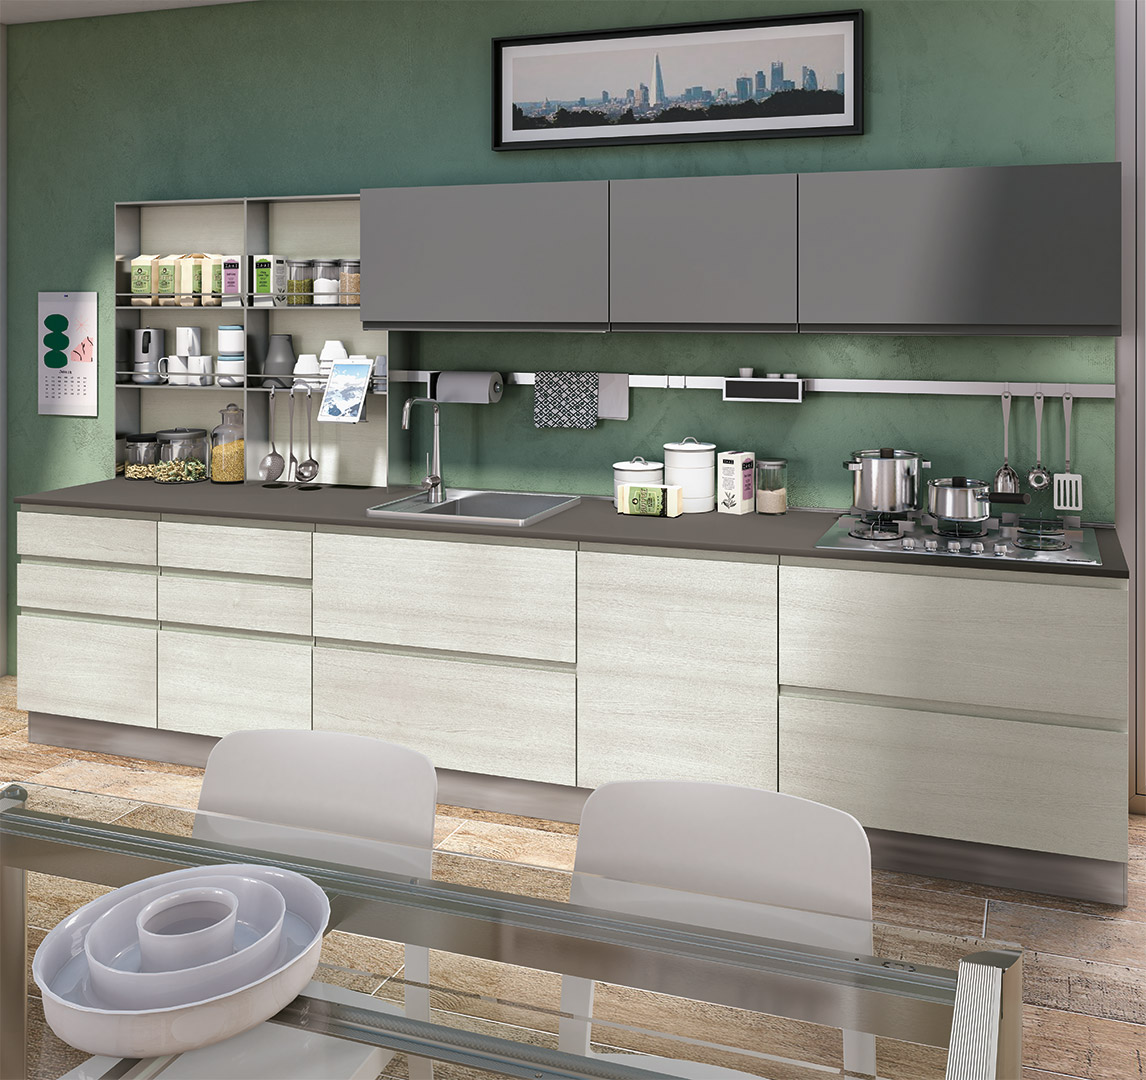 Cucina moderna jey jey creo kitchens for Accessori per cucina moderna